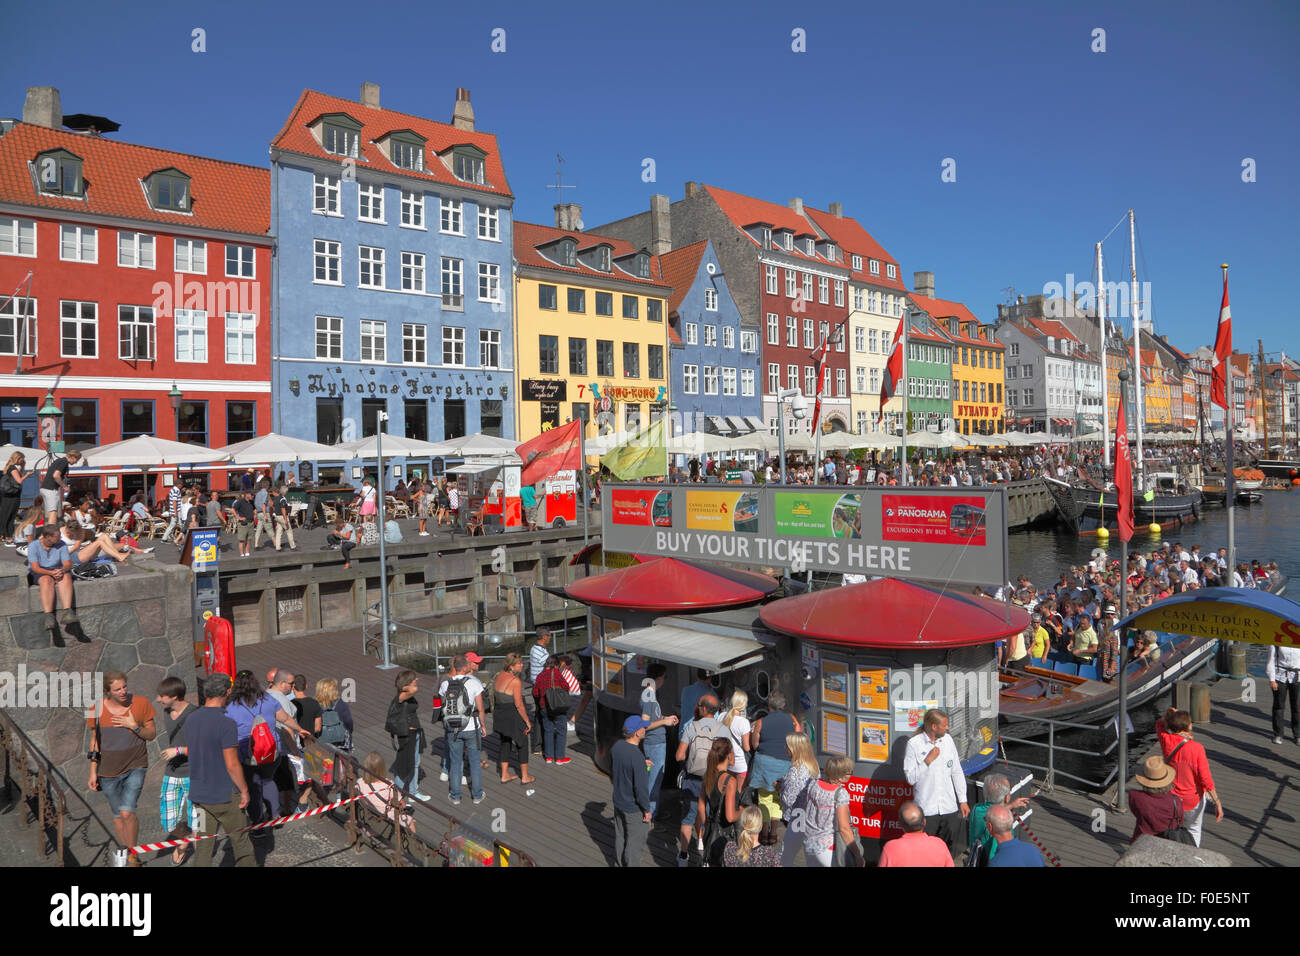 Nyhavn full of crowded canal tour boats and people at the waterside and pavement restaurants on a very est, smf - Stock Image